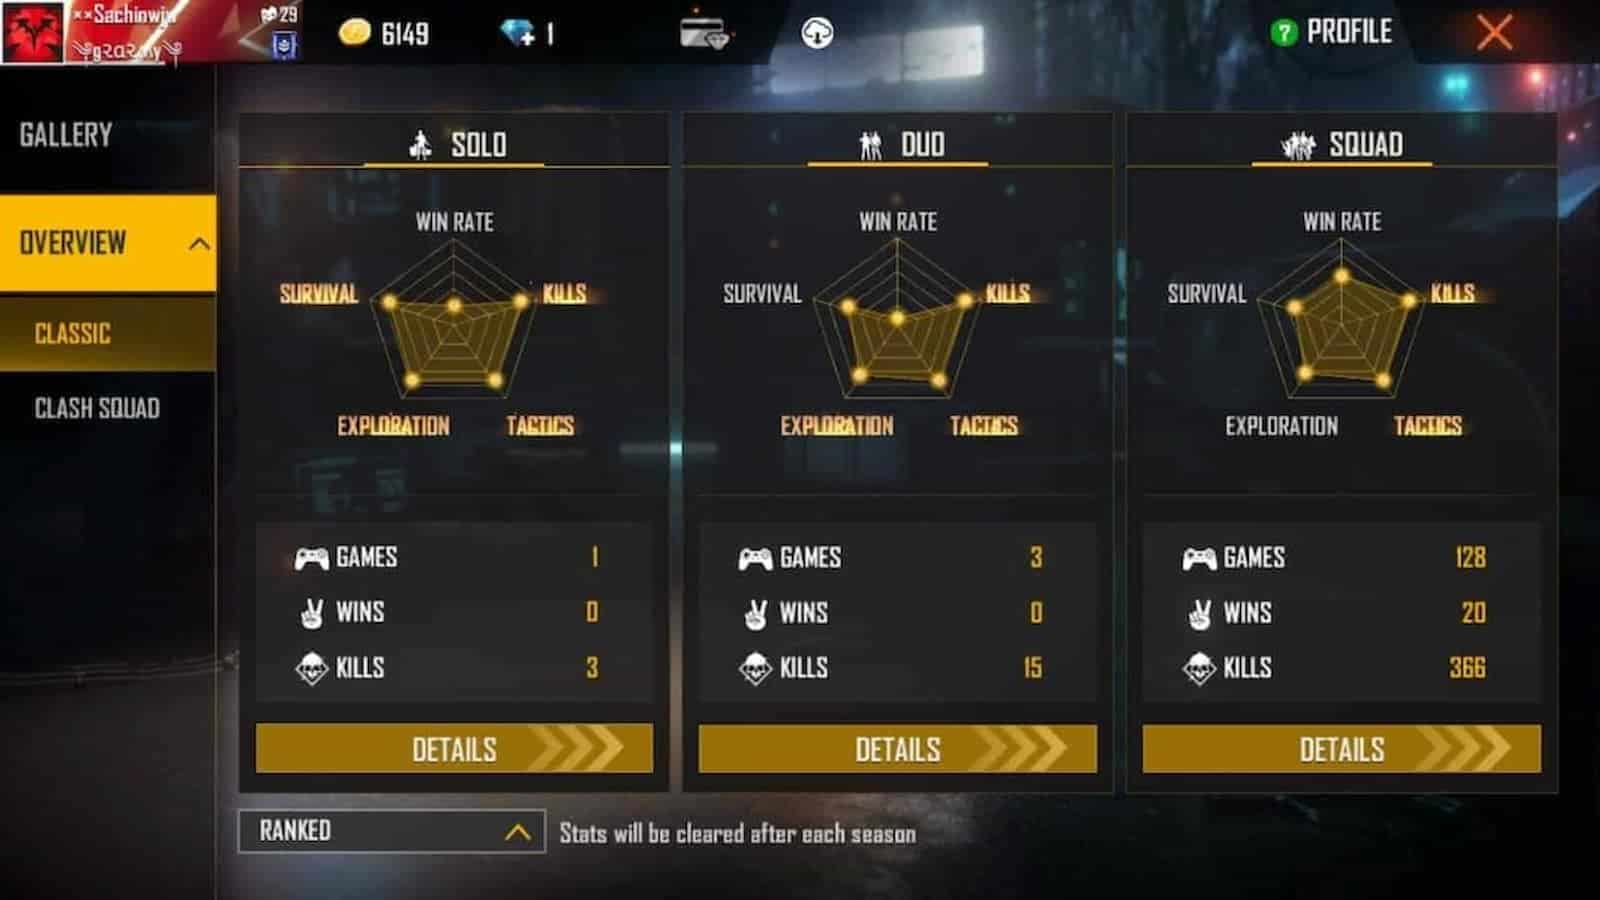 Ranked Stats of AS Gaming